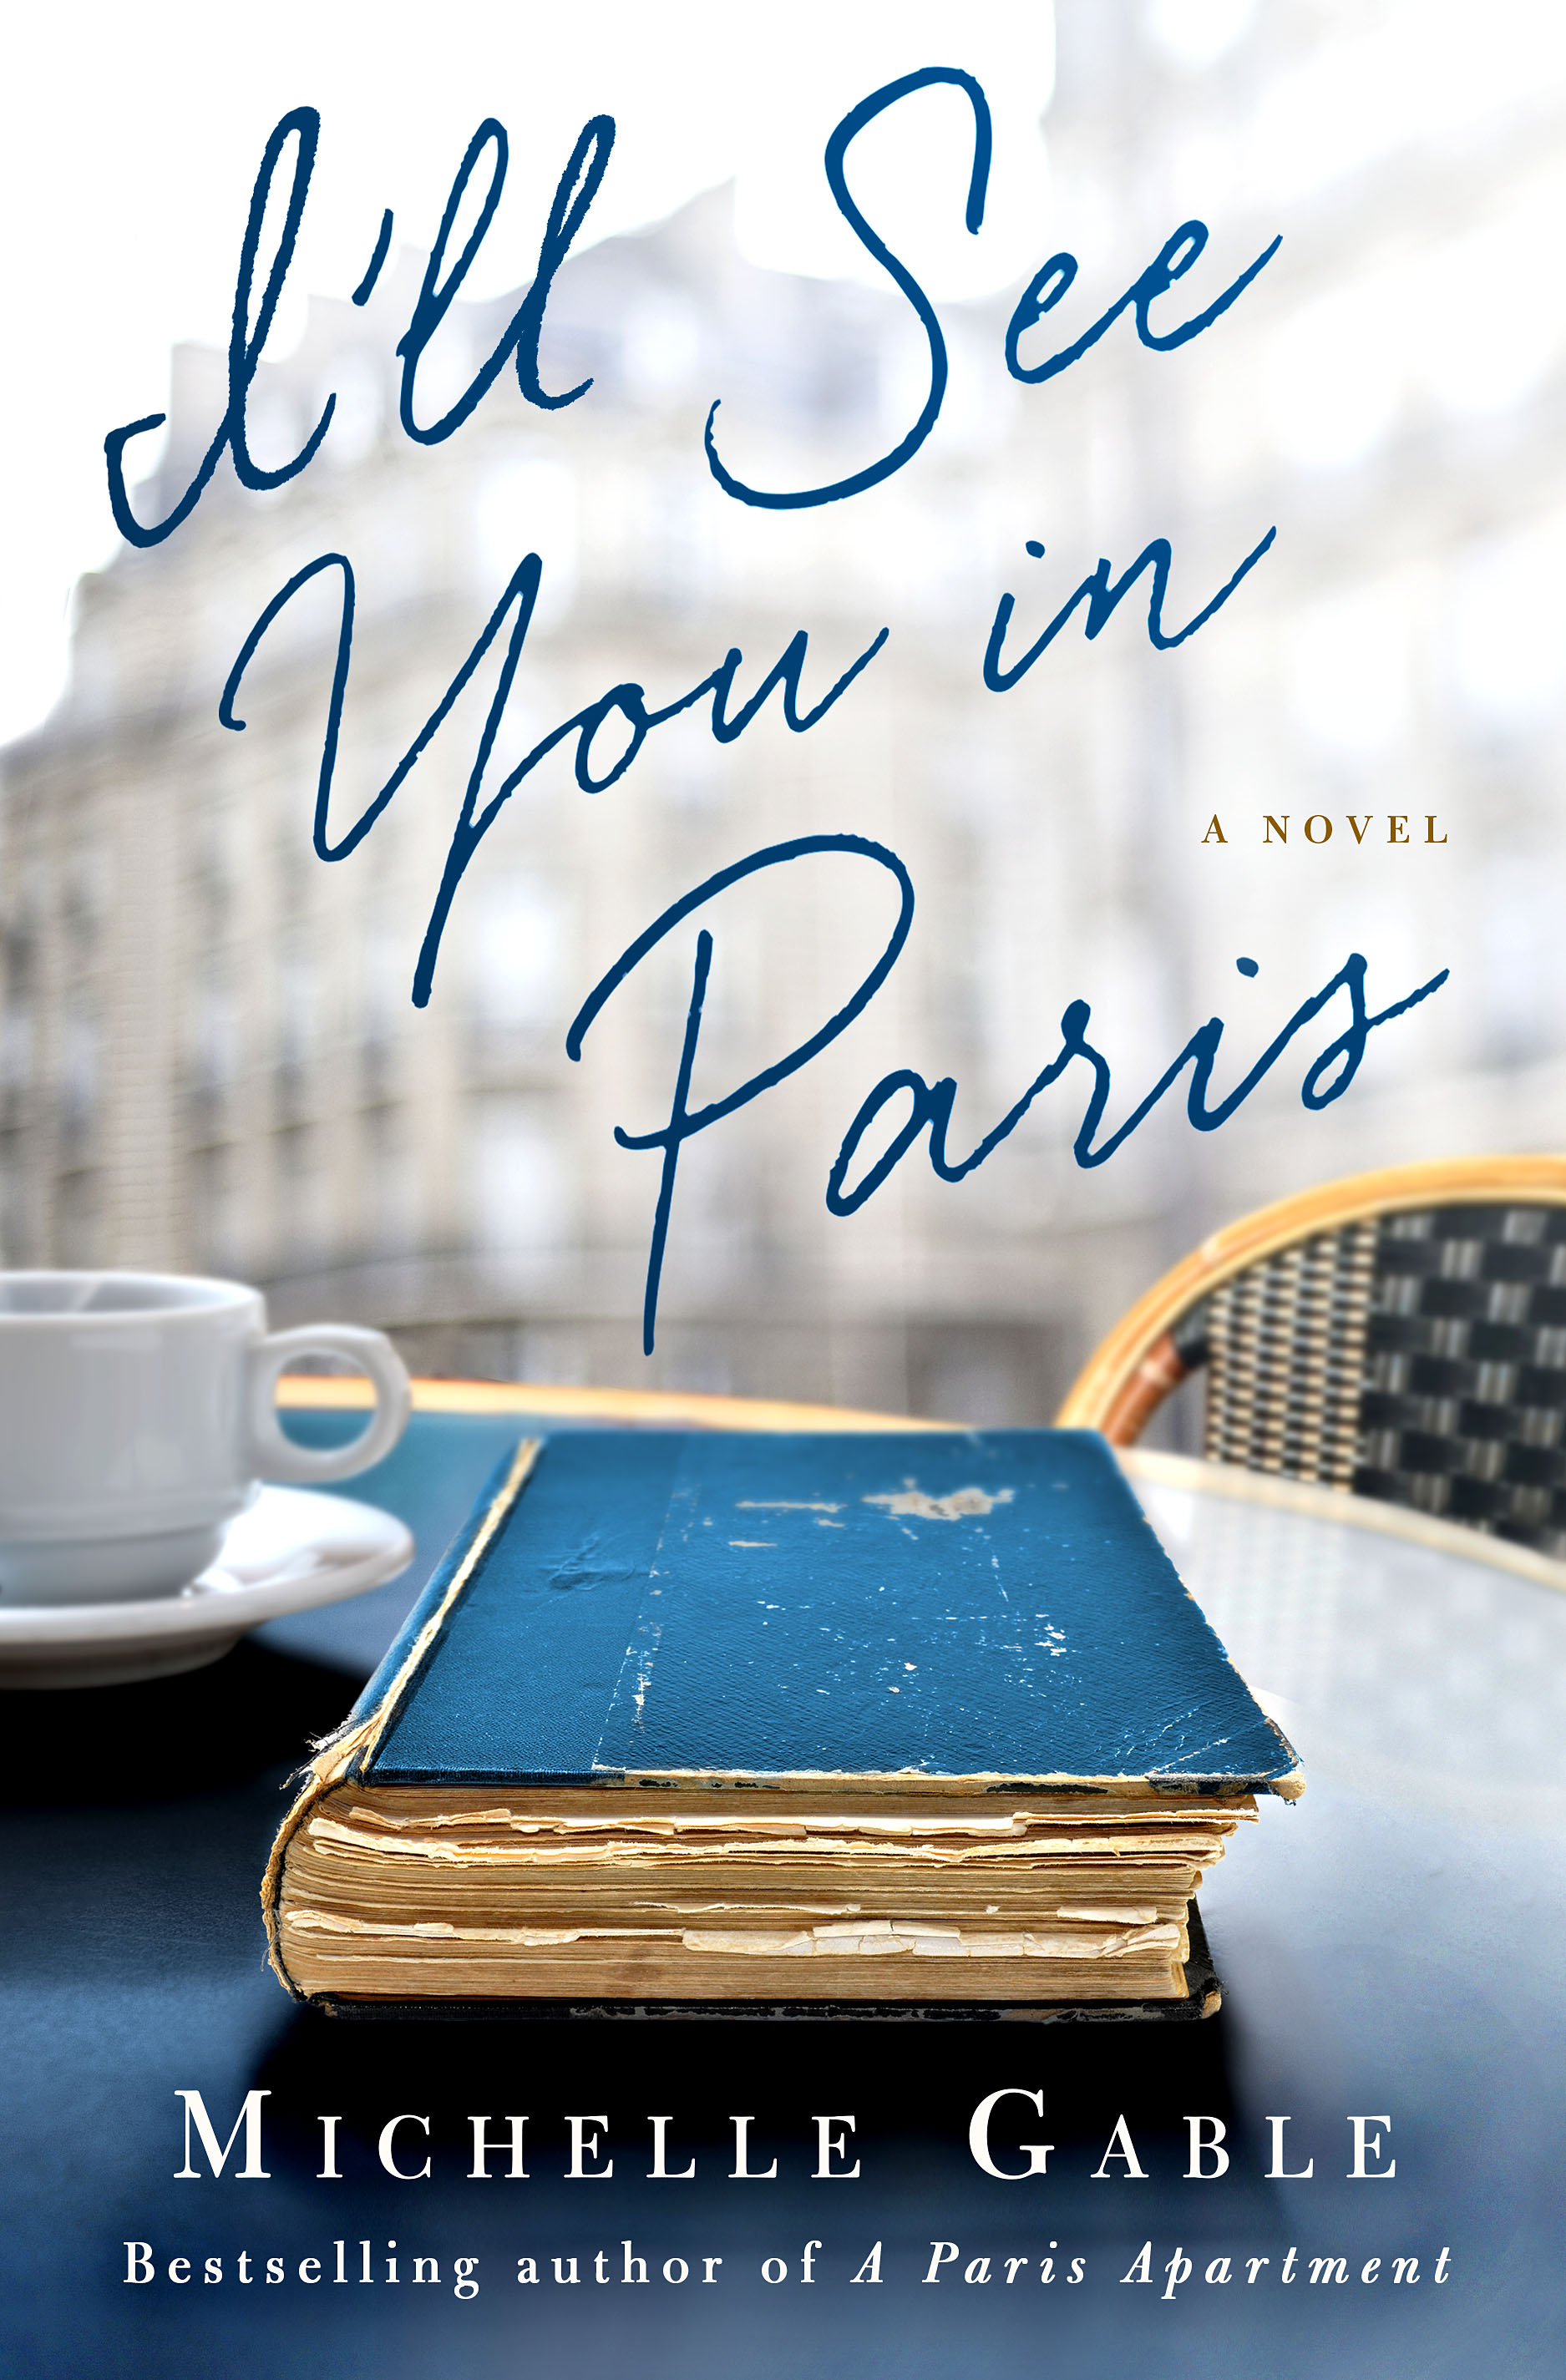 I Ll See You In Paris A New Novel By Michelle Gable Writer